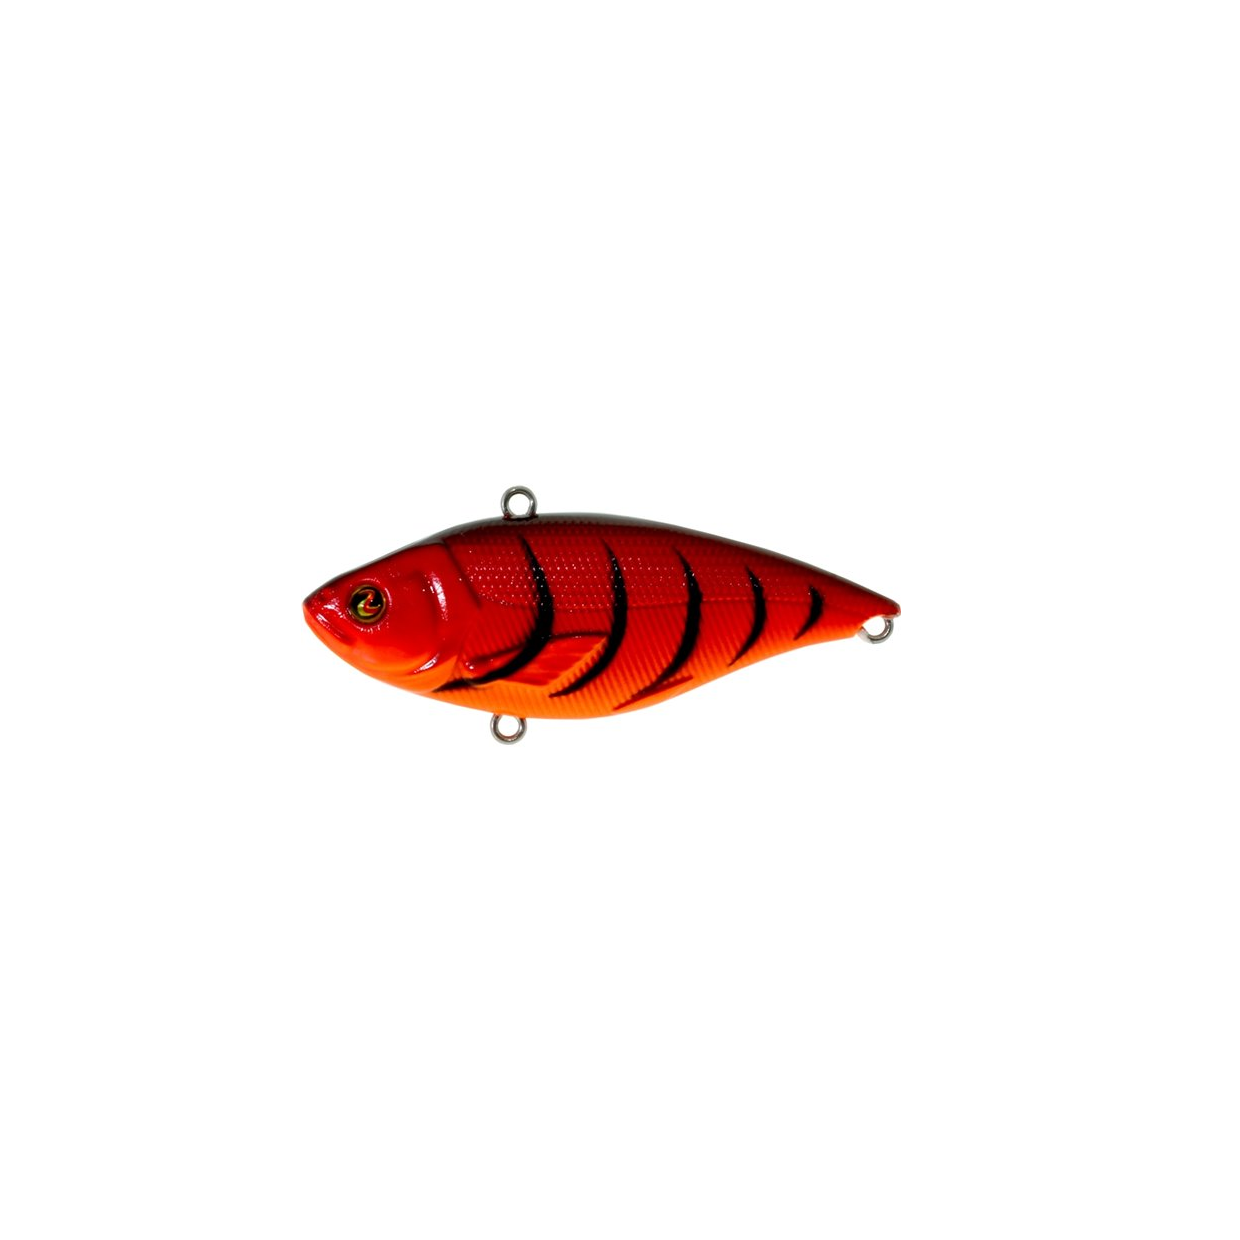 POISSON NAGEUR LIPLESS RIVER2SEA RUCKUS 75 mm